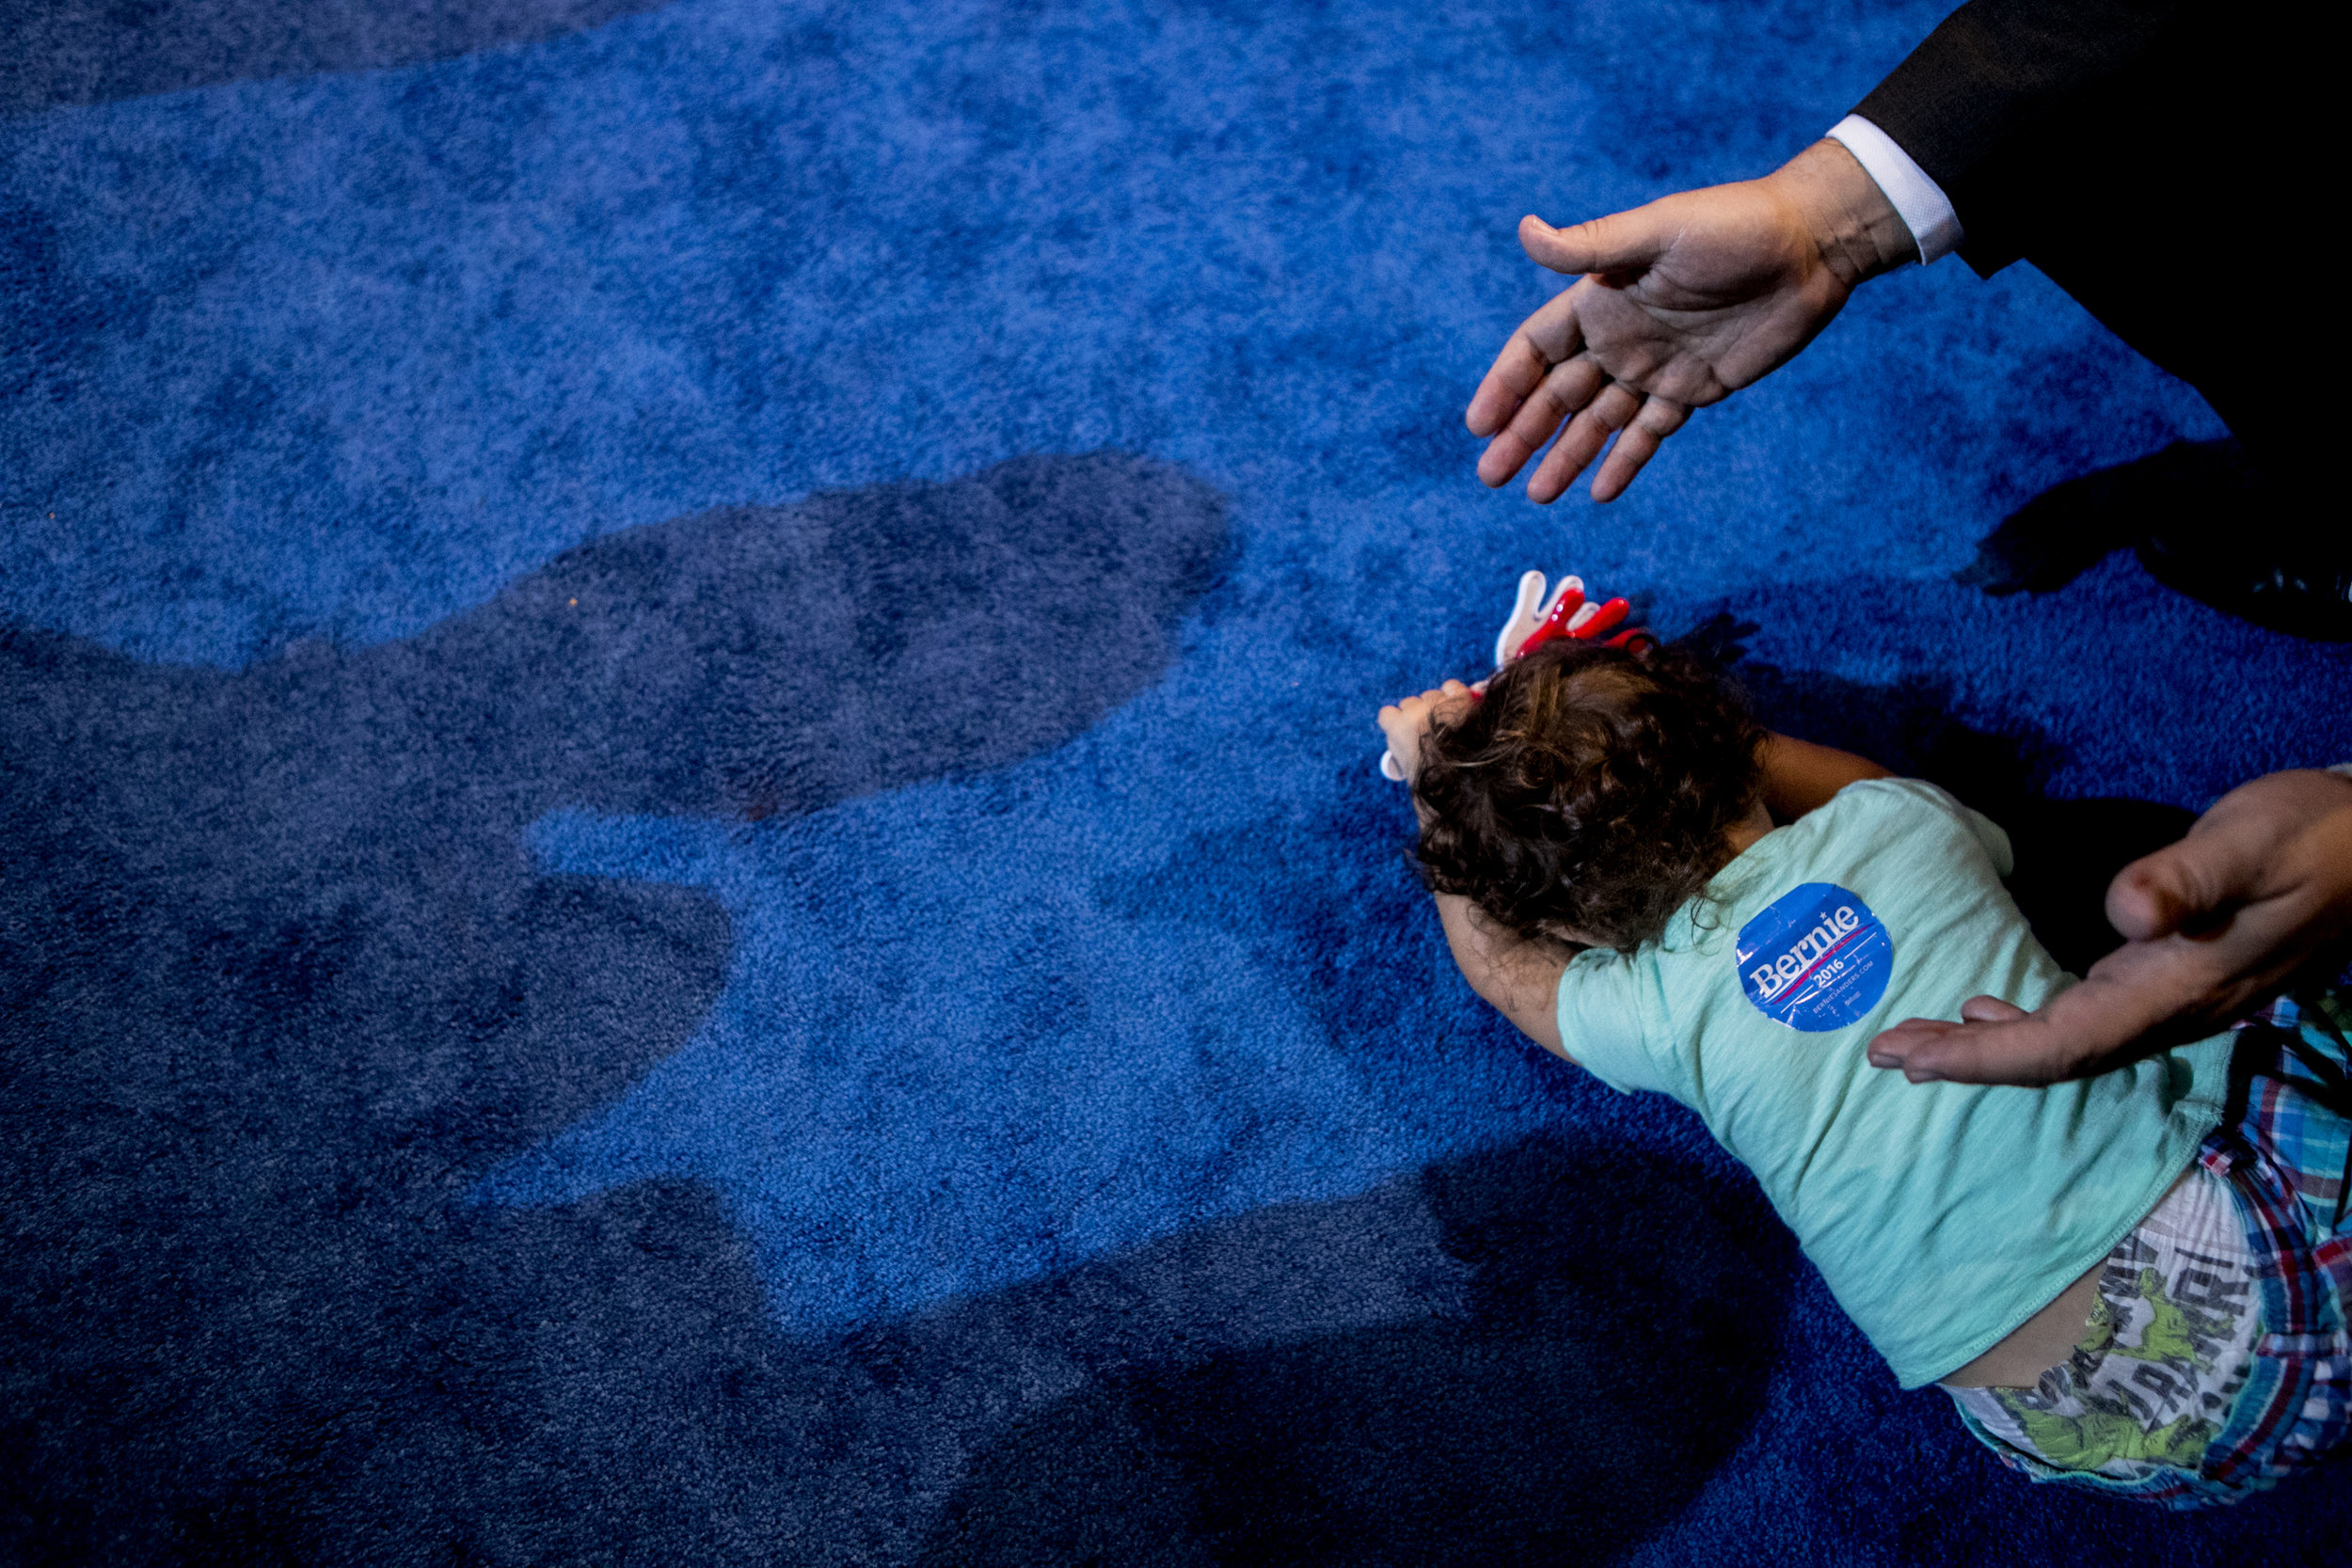 A young Bernie supporter refuses to get up off the convention floor.